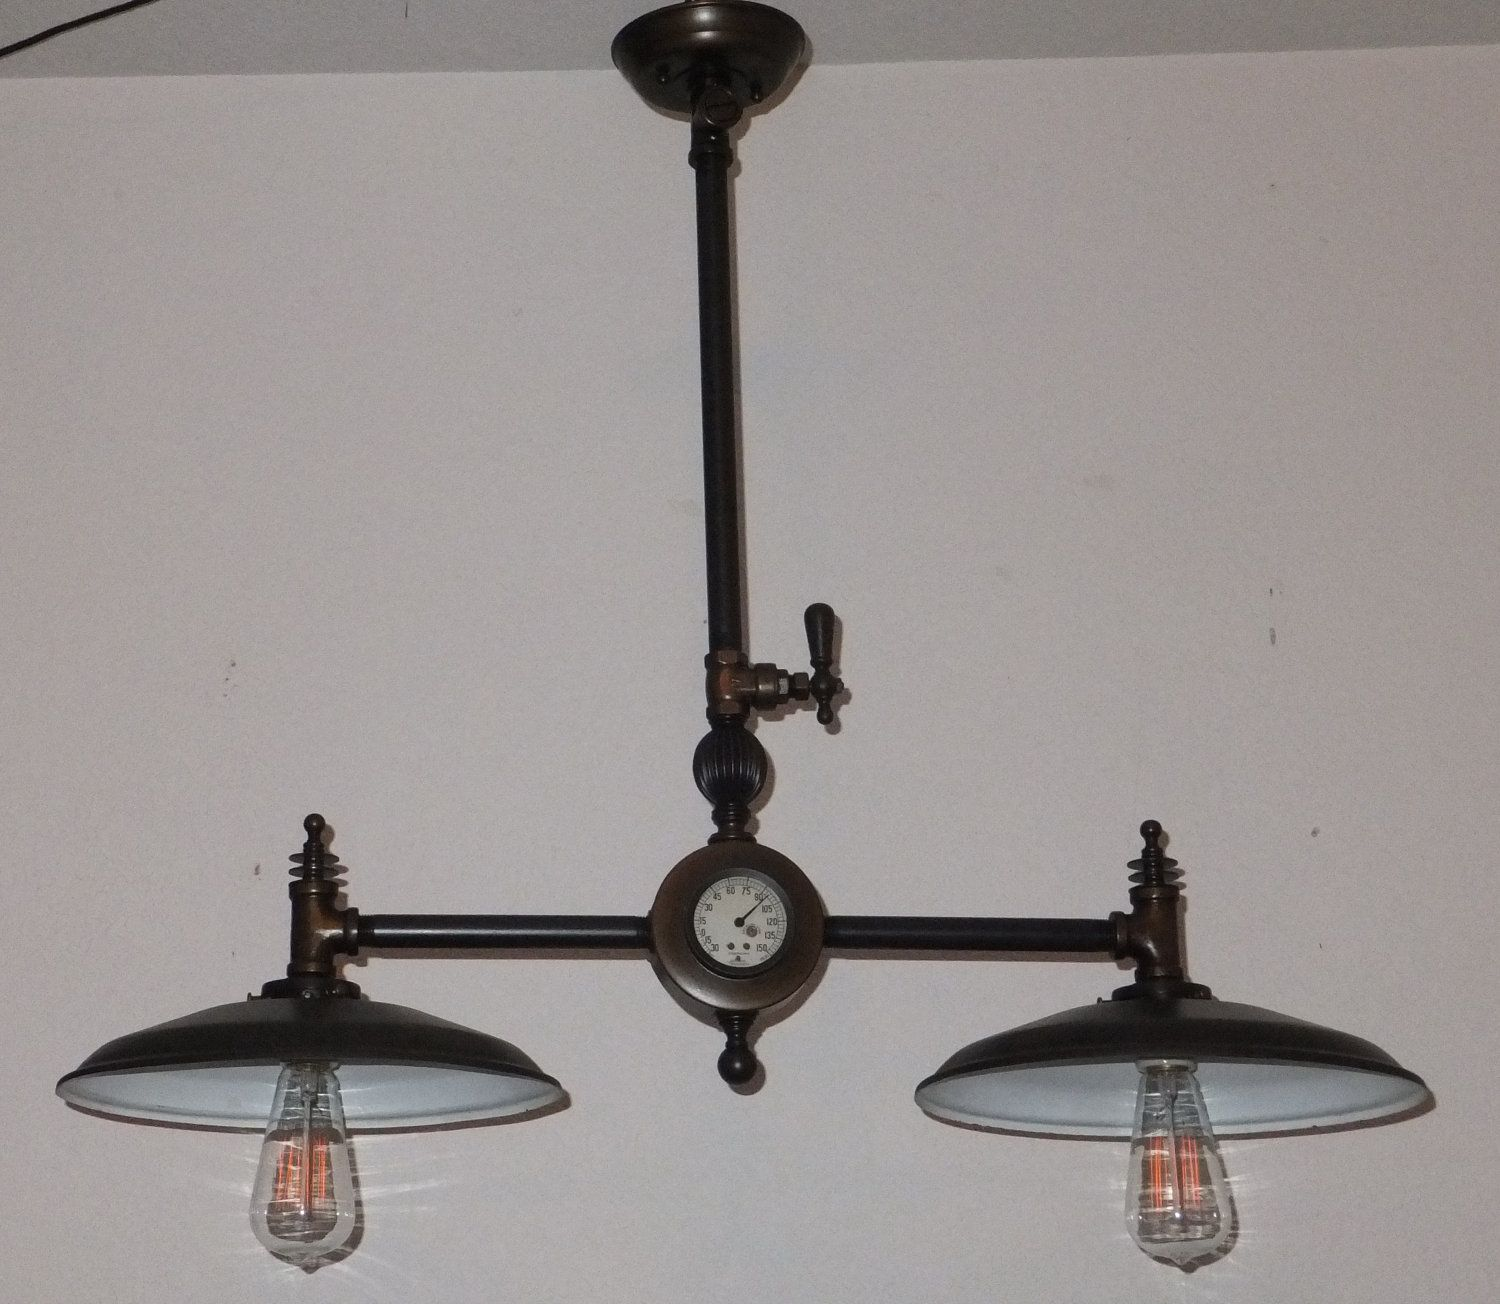 Vintage industrial lighting fixtures for home industrial design vintage industrial lighting fixtures for home arubaitofo Gallery